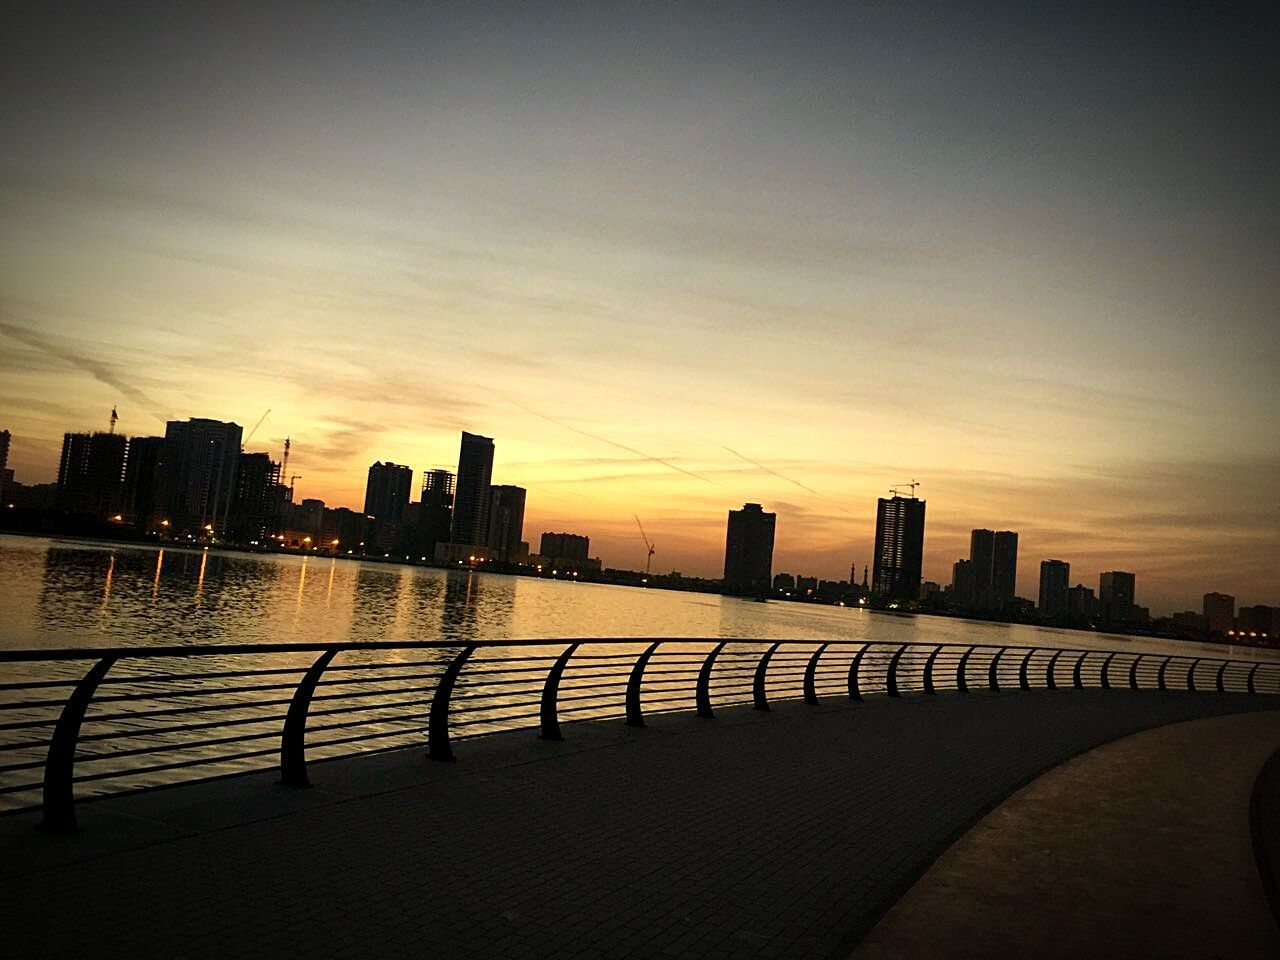 sunset, architecture, building exterior, built structure, skyscraper, city, railing, sky, no people, outdoors, travel destinations, modern, water, urban skyline, cityscape, day